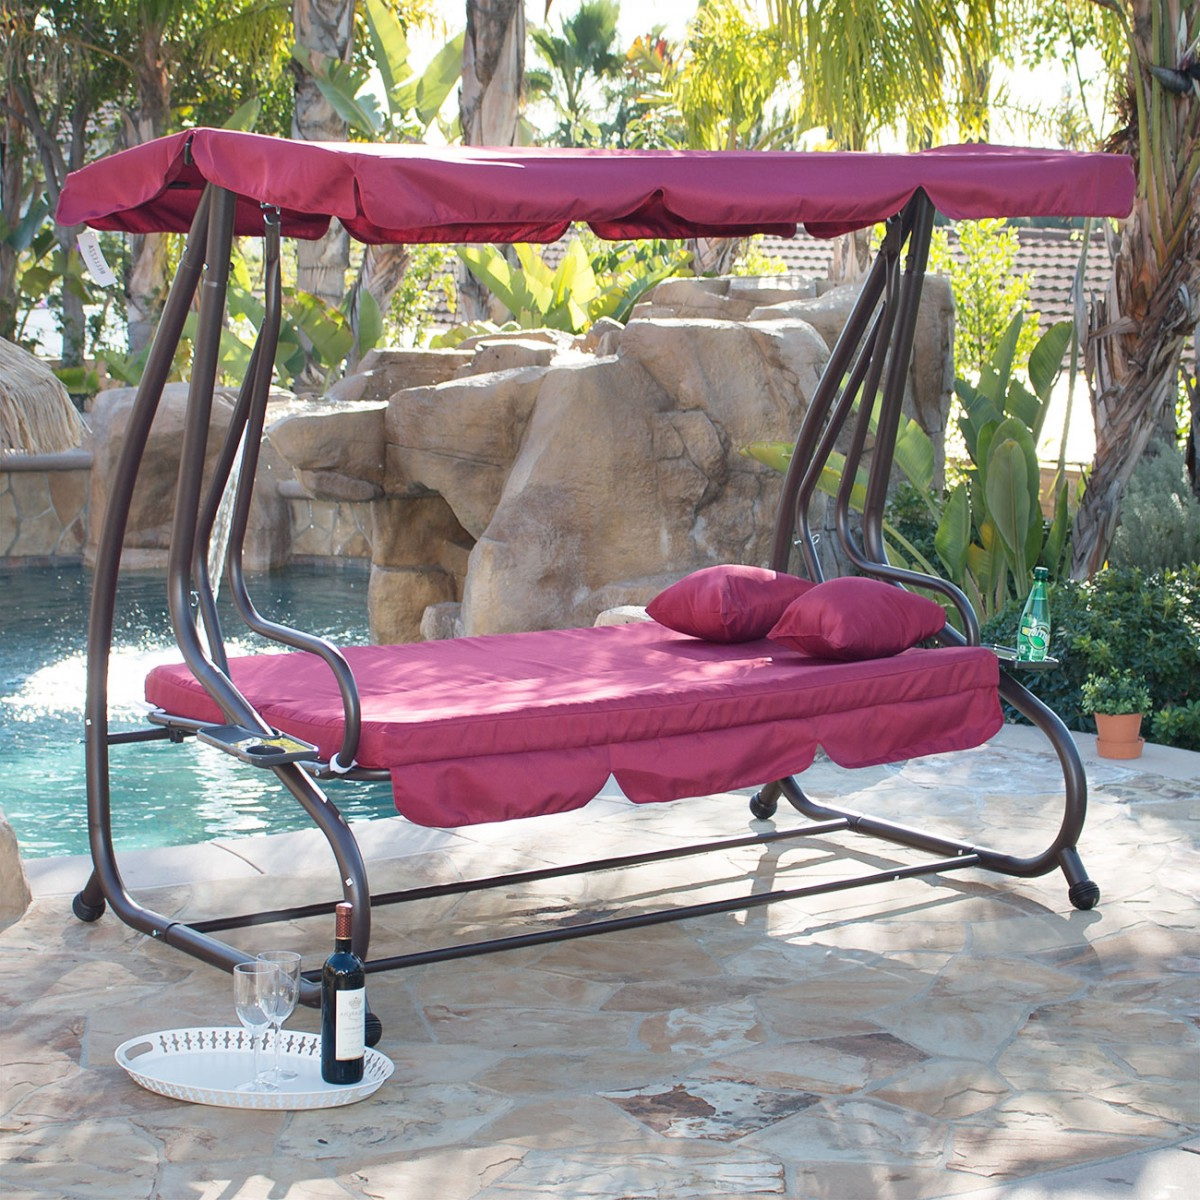 Hammock Patio Backyard Deck Outdoor Canopy Swingbed Garden With Regard To Best And Newest Patio Gazebo Porch Canopy Swings (View 24 of 30)